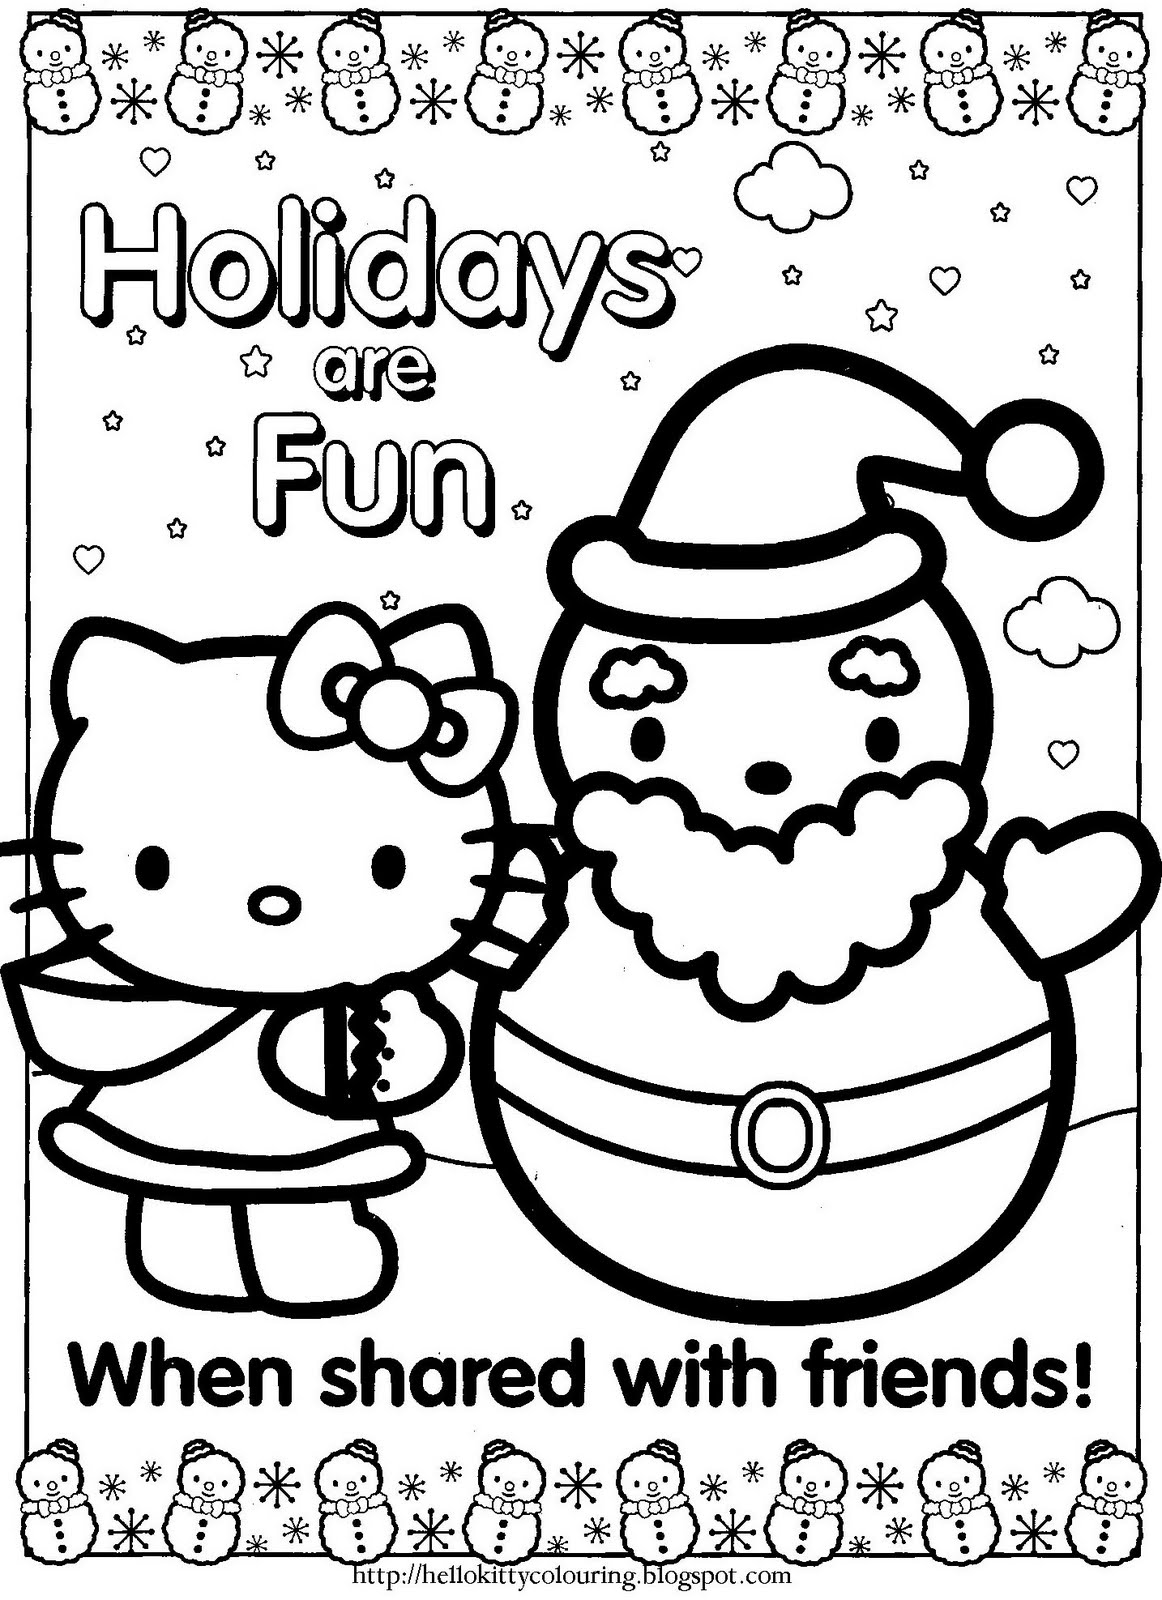 printable hello kitty coloring pages christmas | HELLO KITTY COLORING PAGES